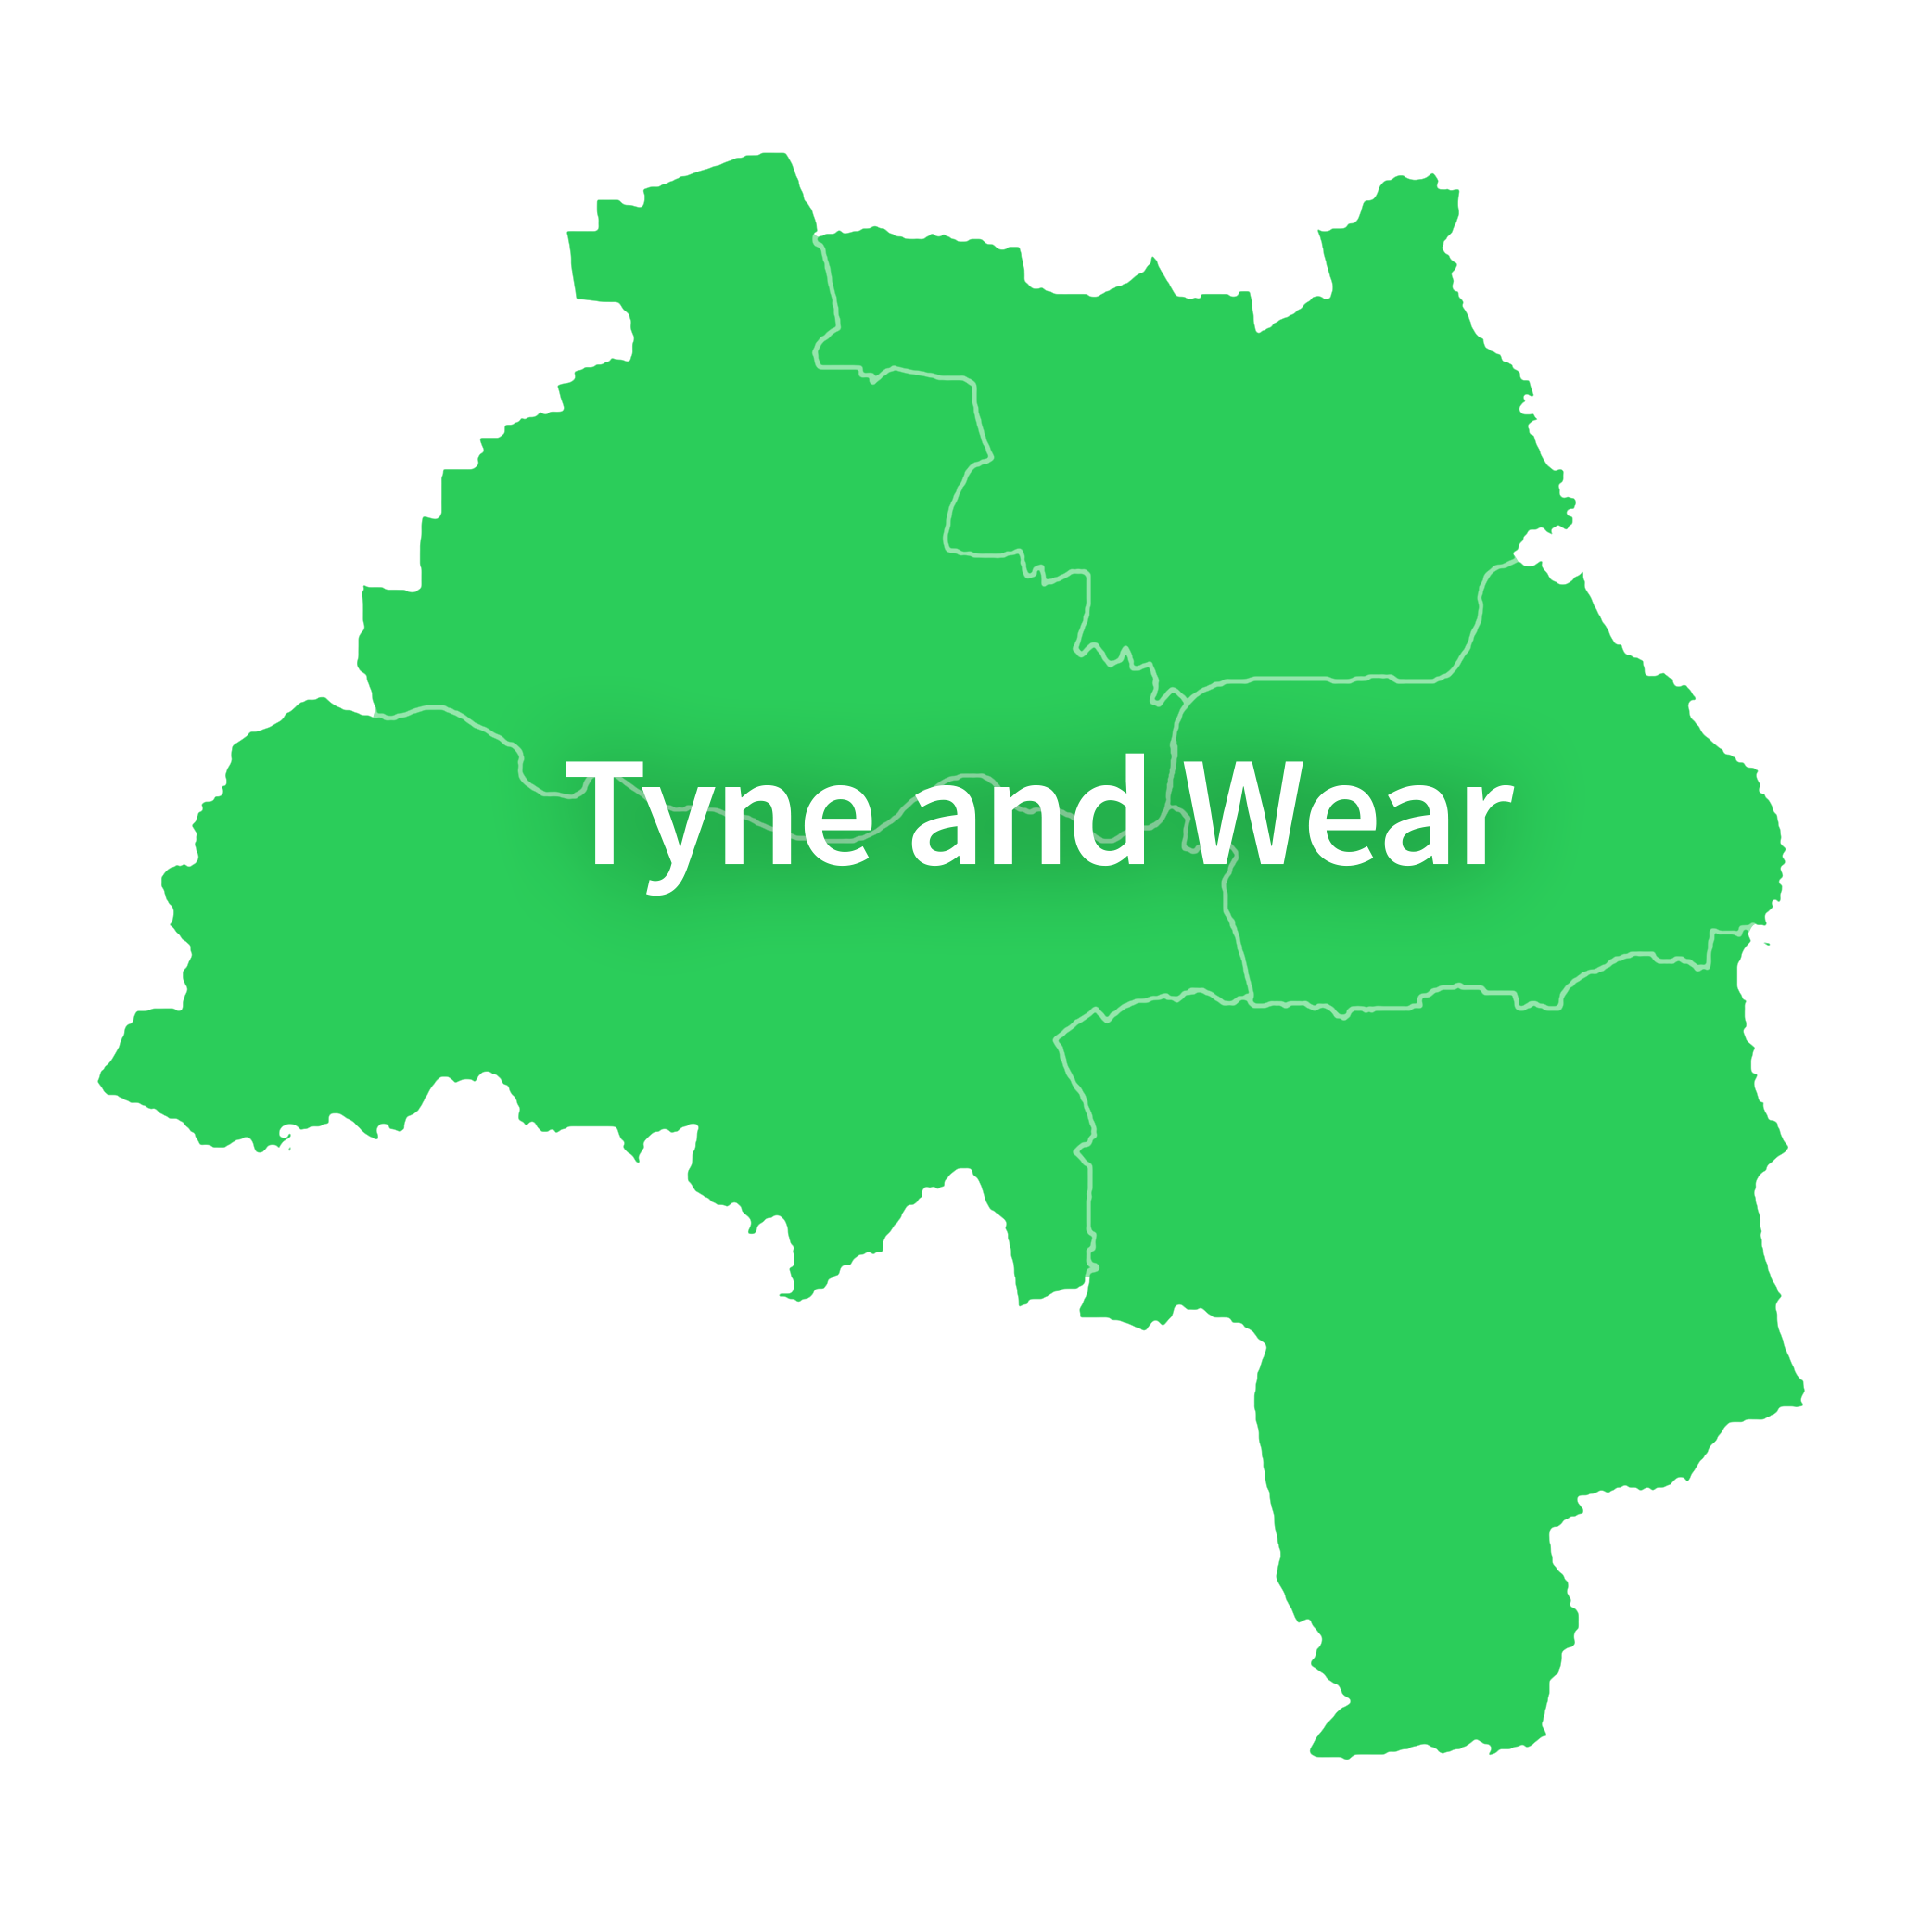 Map of Tyne and Wear